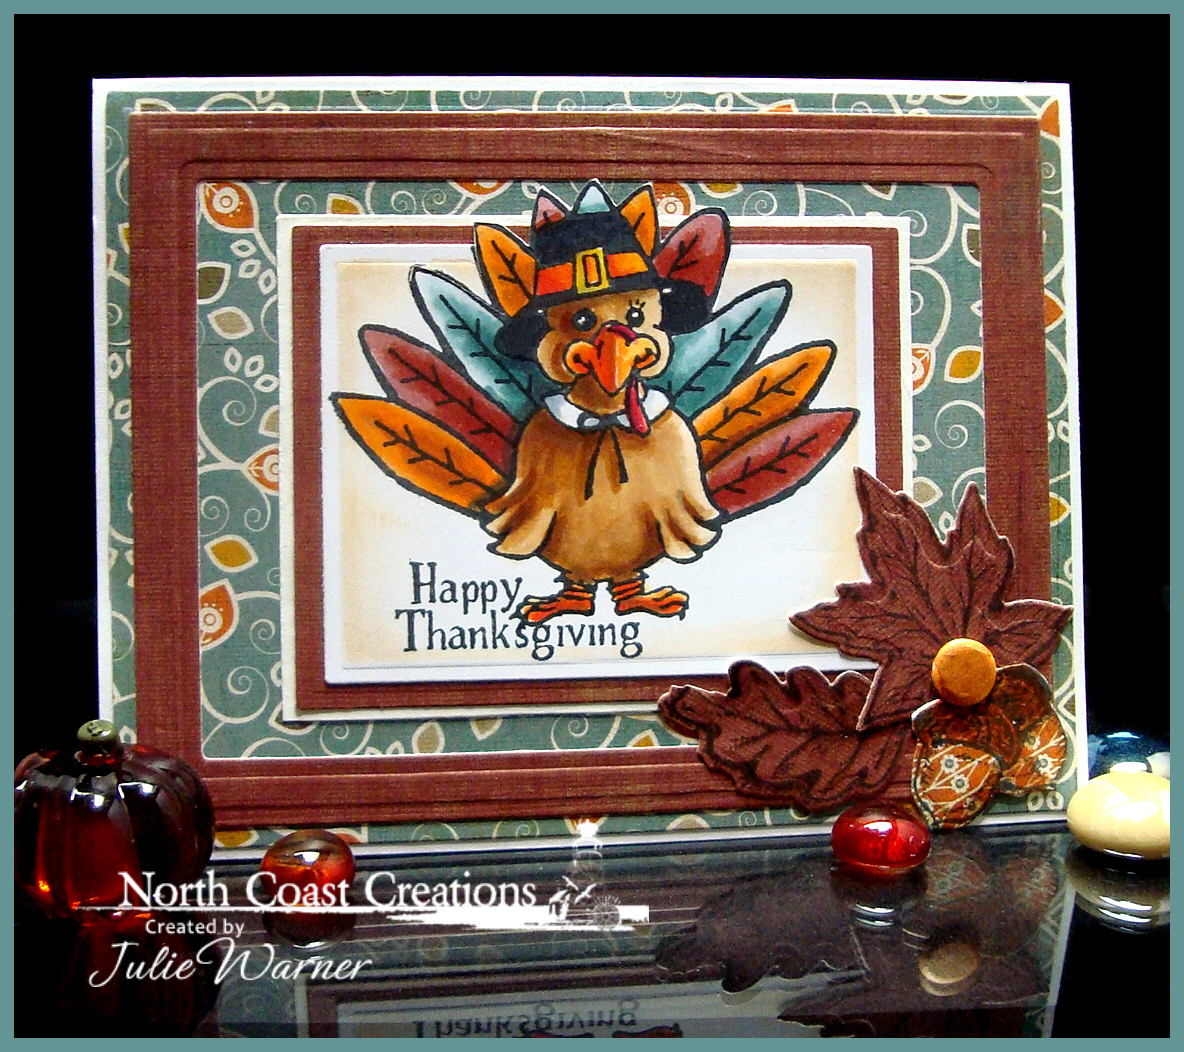 Stamps - North Coast Creations Tommy Turkey, Our Daily Bread Designs Autumn Tree, Our Daily Bread Designs  Autumn Blessings, Our Daily Bread Designs Custom Fall Leaves & Acorns Dies